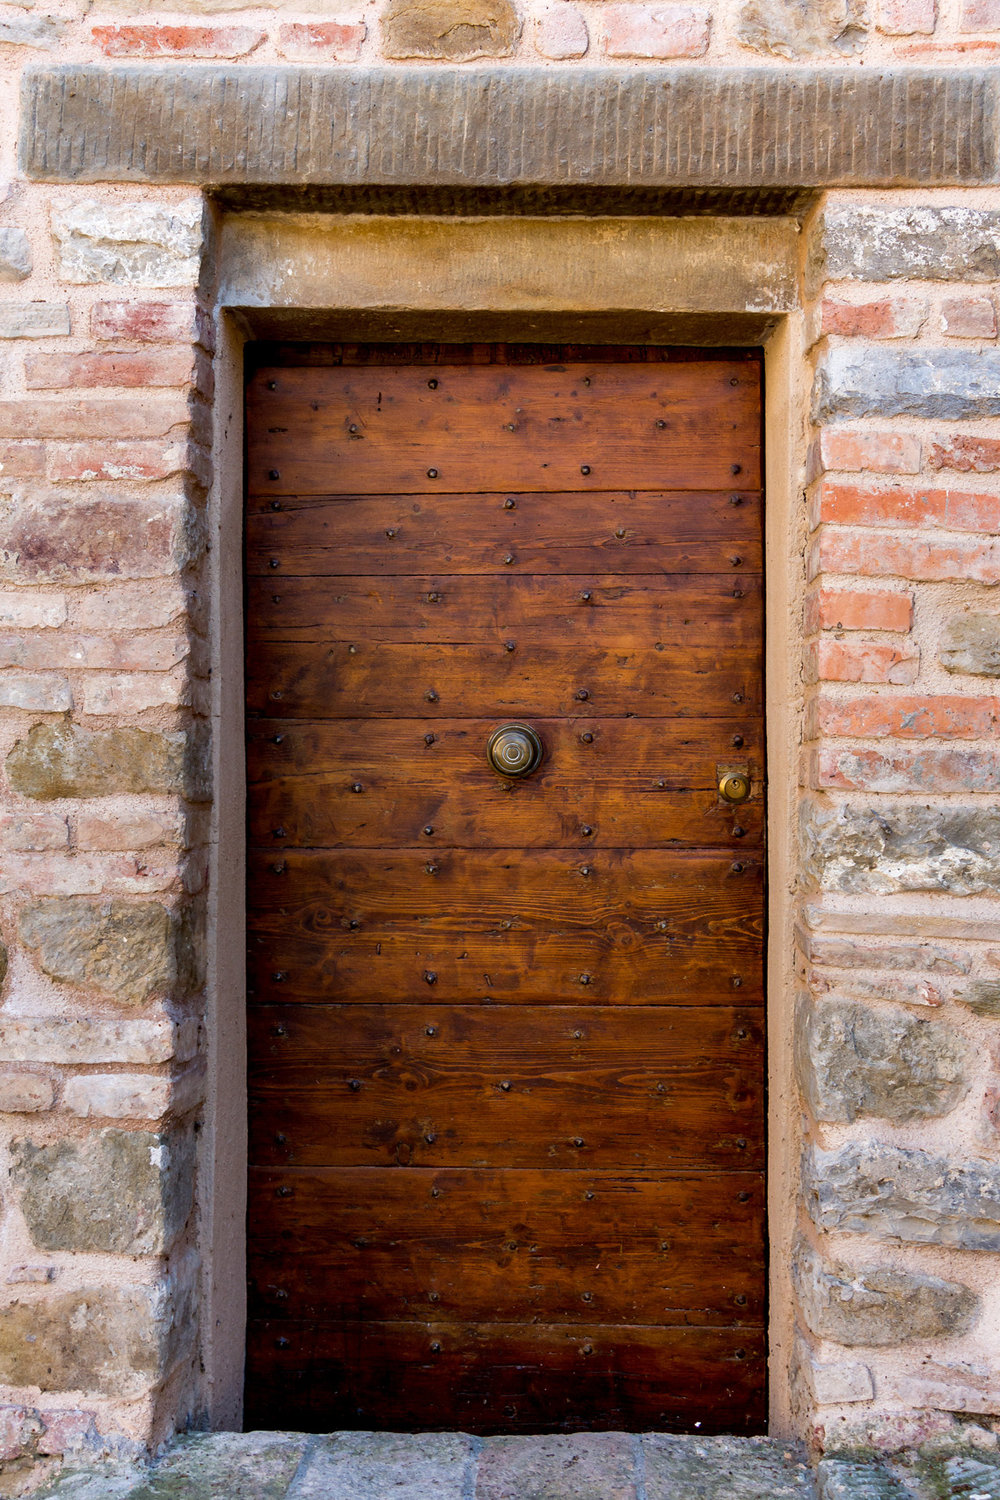 Doors of Monte del Lago, Umbria